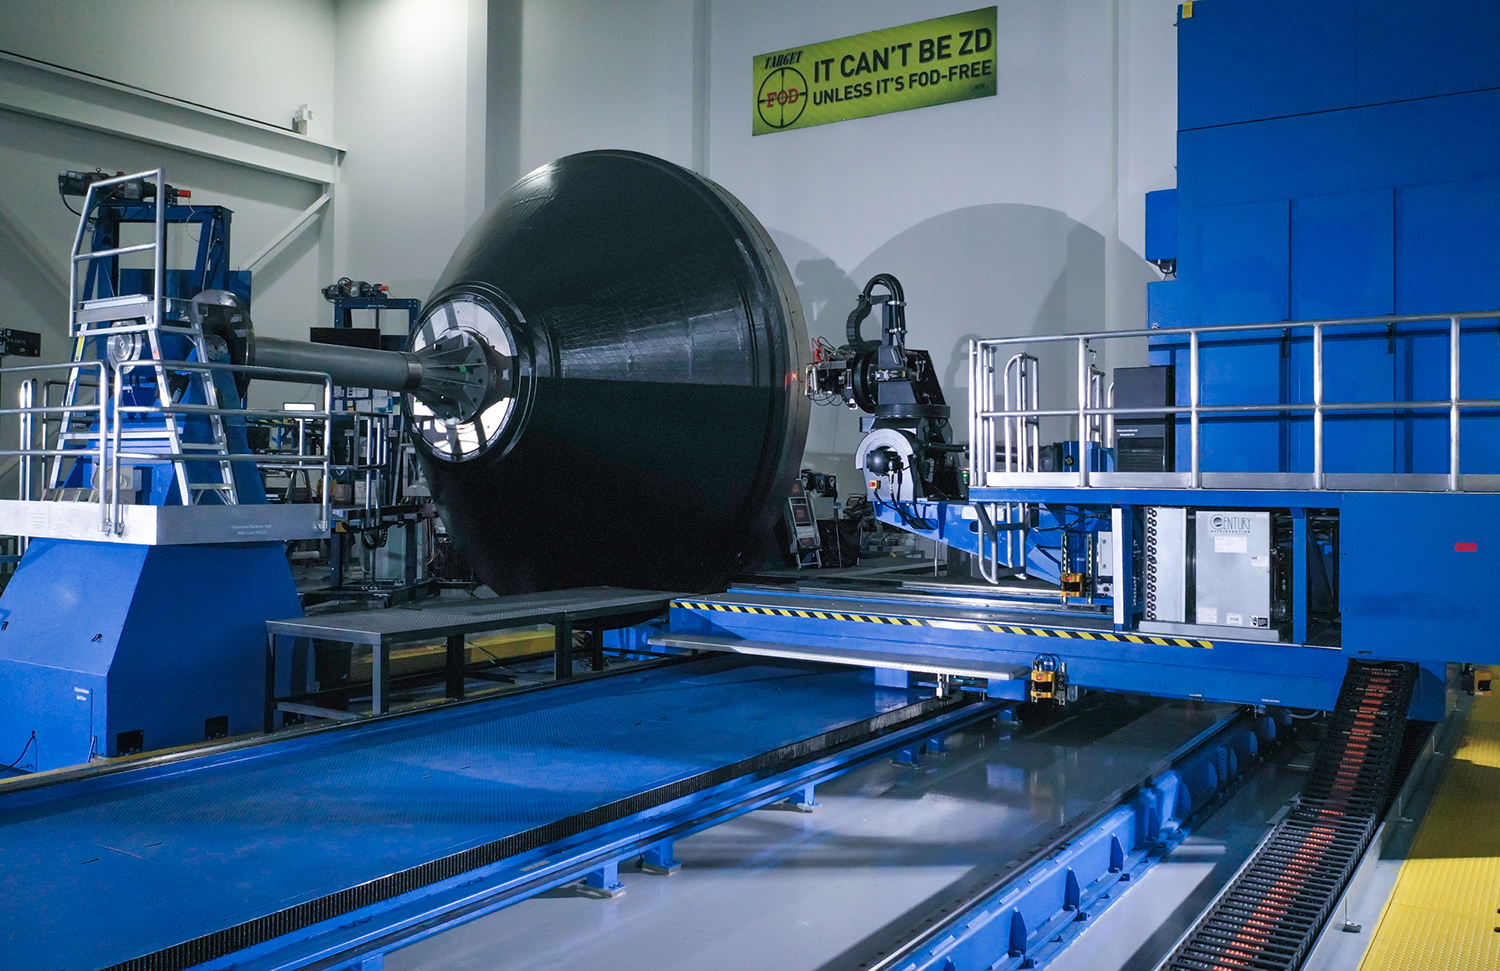 OmegA's payload adapter fitting pathfinder takes shape through automated fiber placement at Northrop Grumman's Iuka, Mississippi facility. (March 2020)